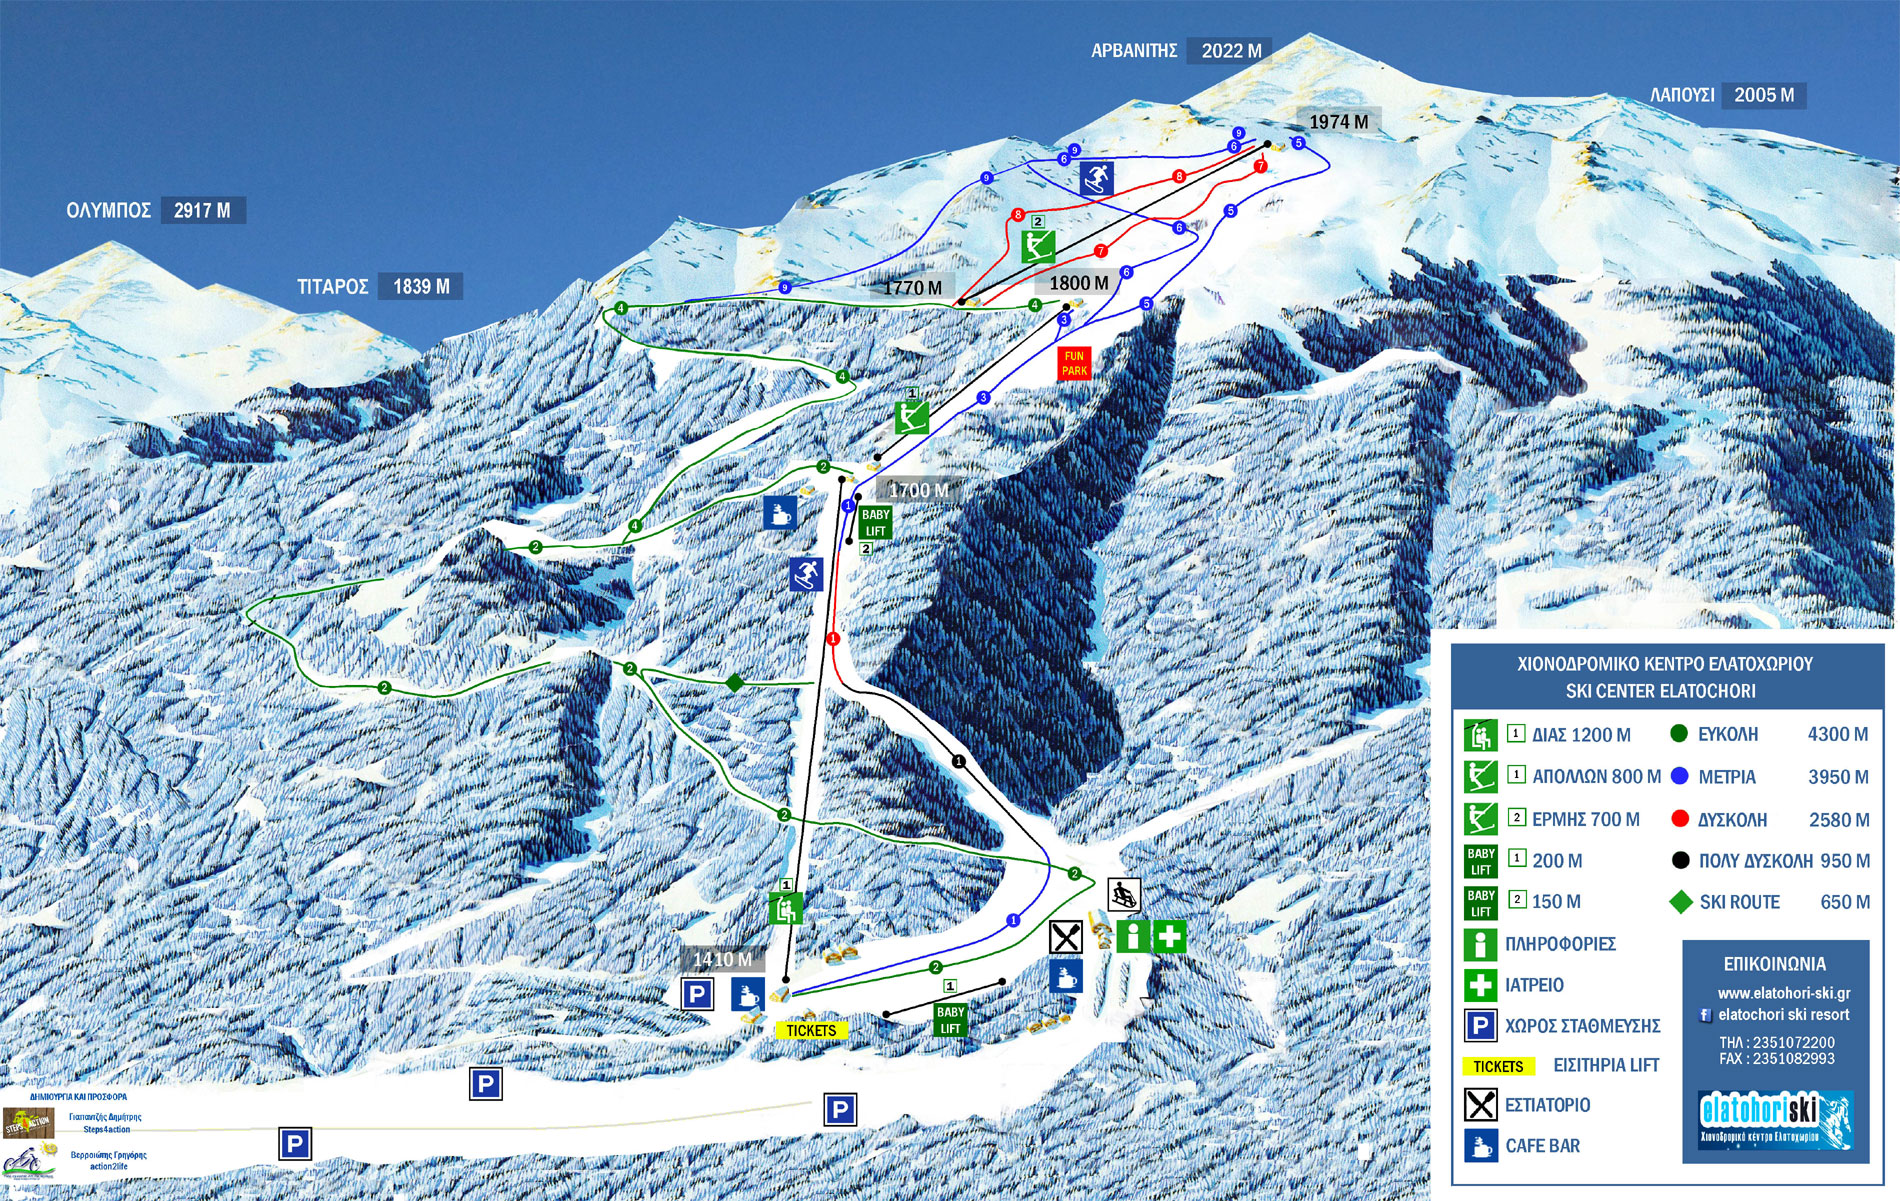 Elatohori Pierias Piste / Trail Map